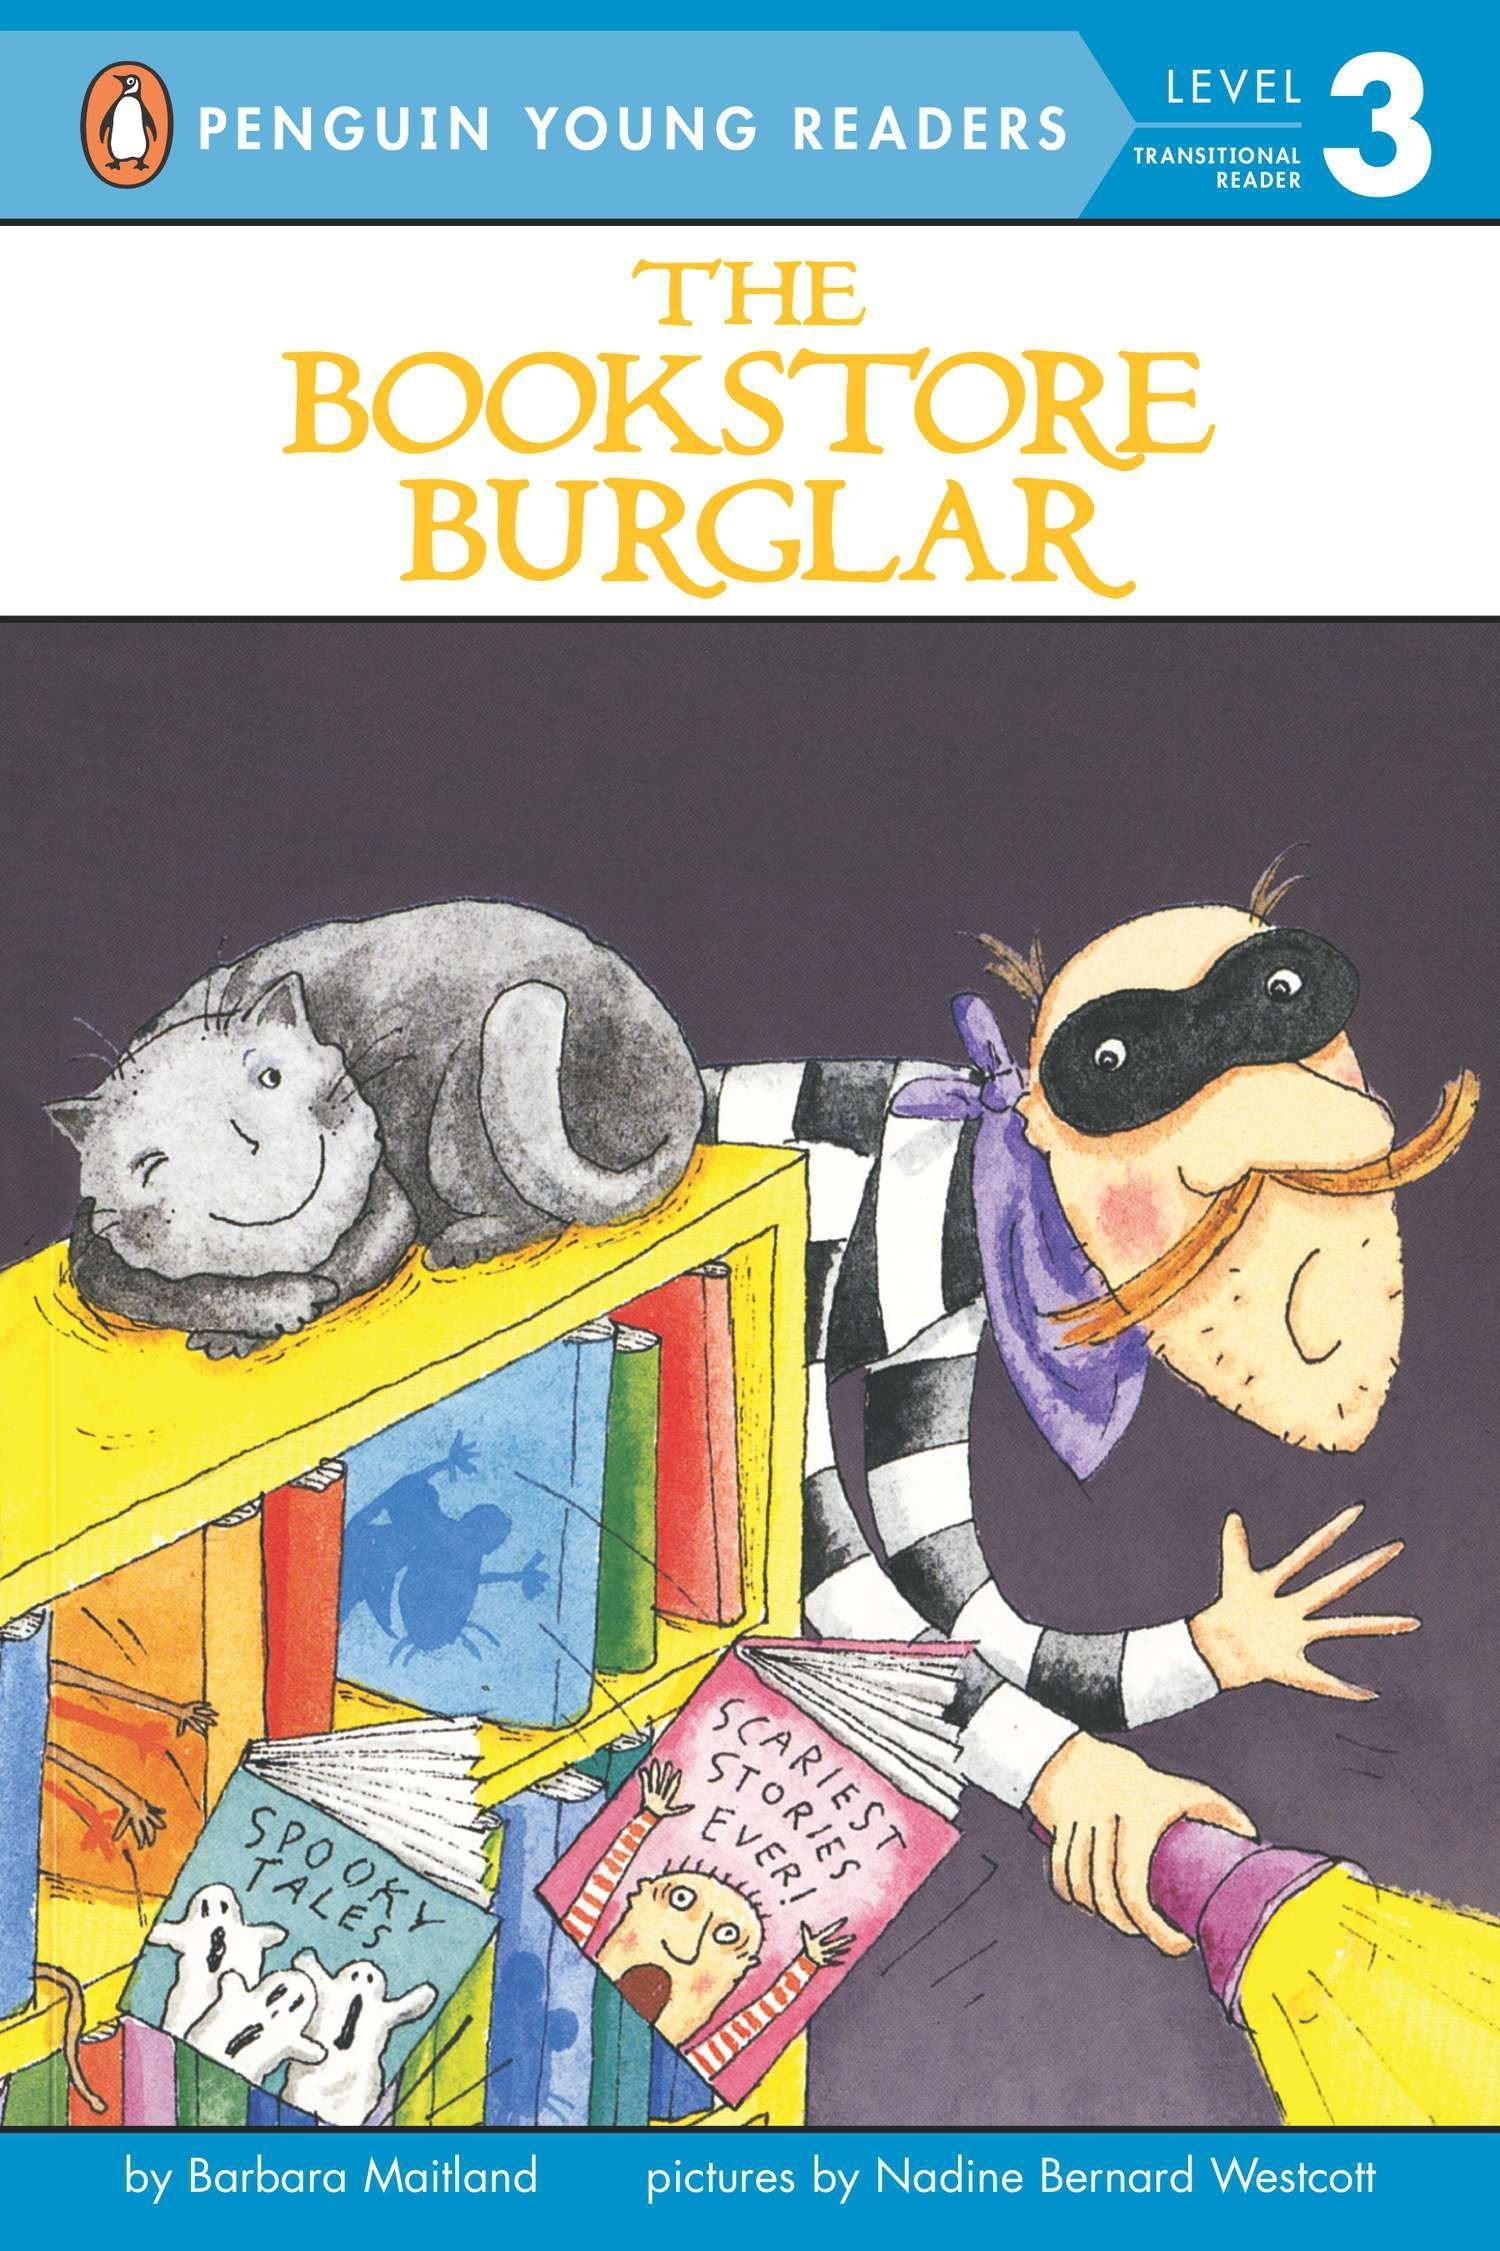 Amazon.com: The Bookstore Burglar (Penguin Young Readers, Level 3)  (9780141310336): Barbara Maitland, Nadine Bernard Westcott: Books